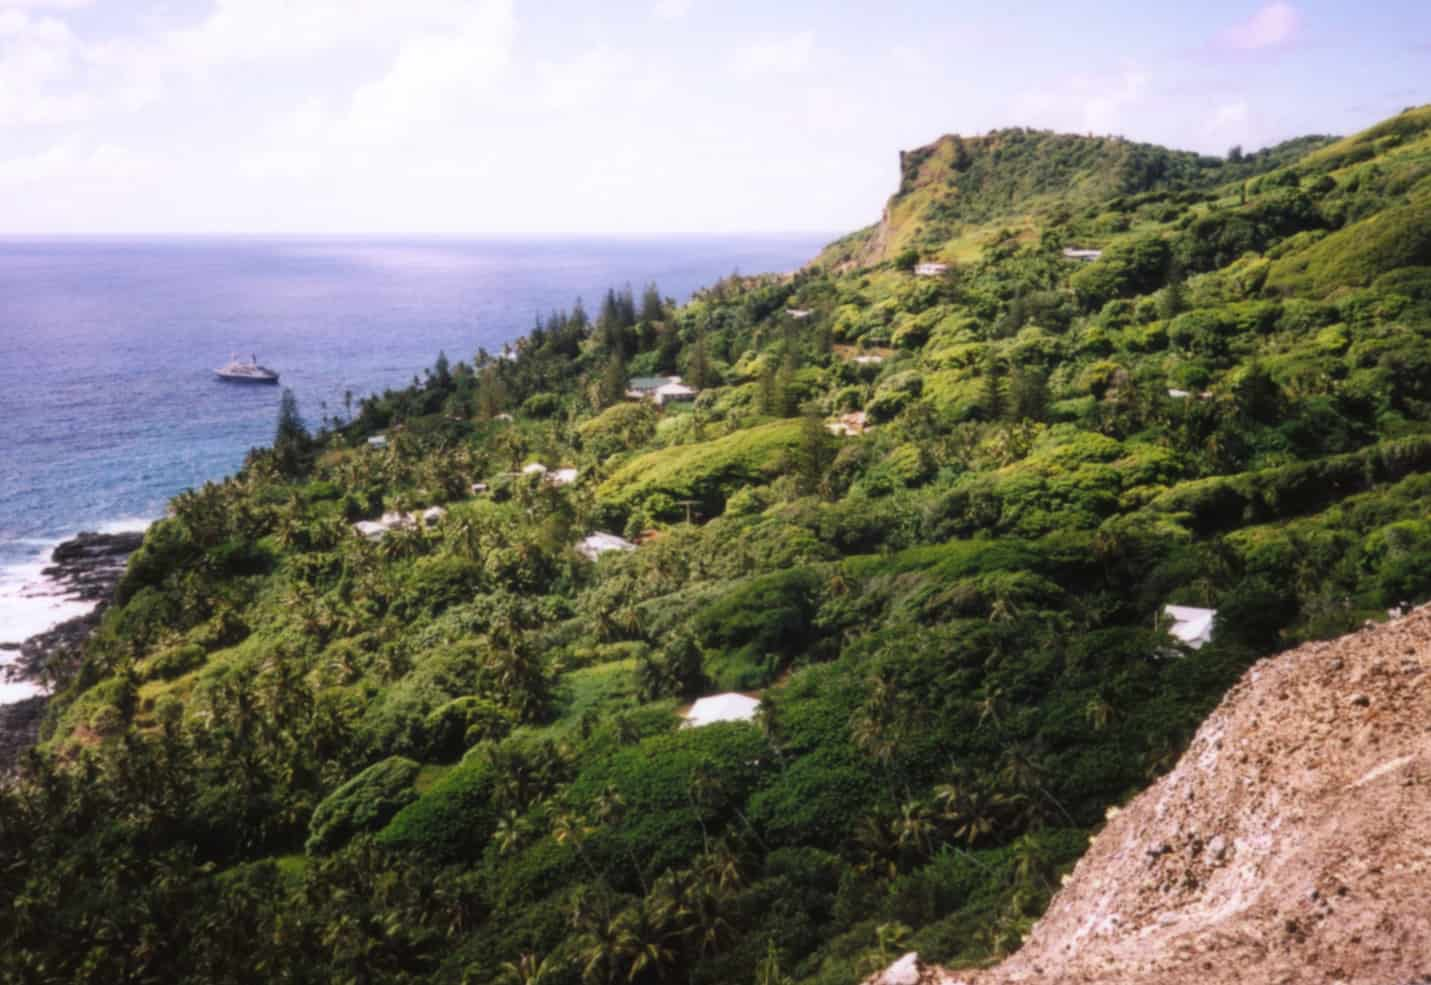 Pitcairn Island - Inhabited Places You Didn't Know Existed